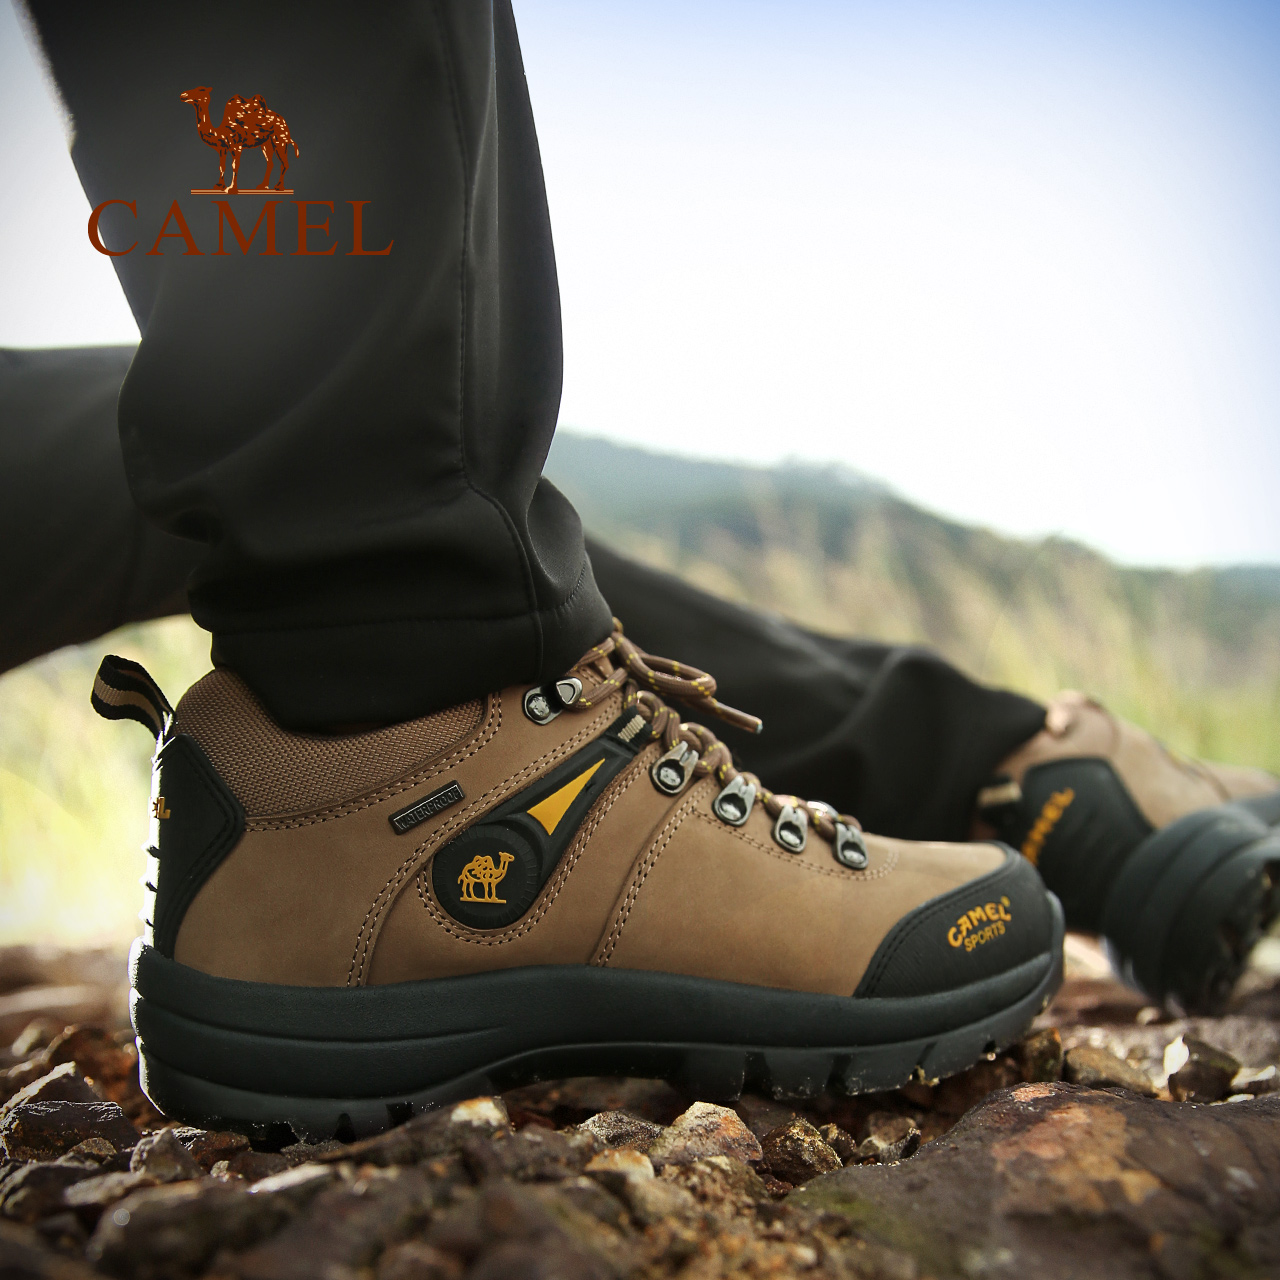 Camel climbing shoes for men waterproof and antiskid outdoor sports summer tourism climbing shoes